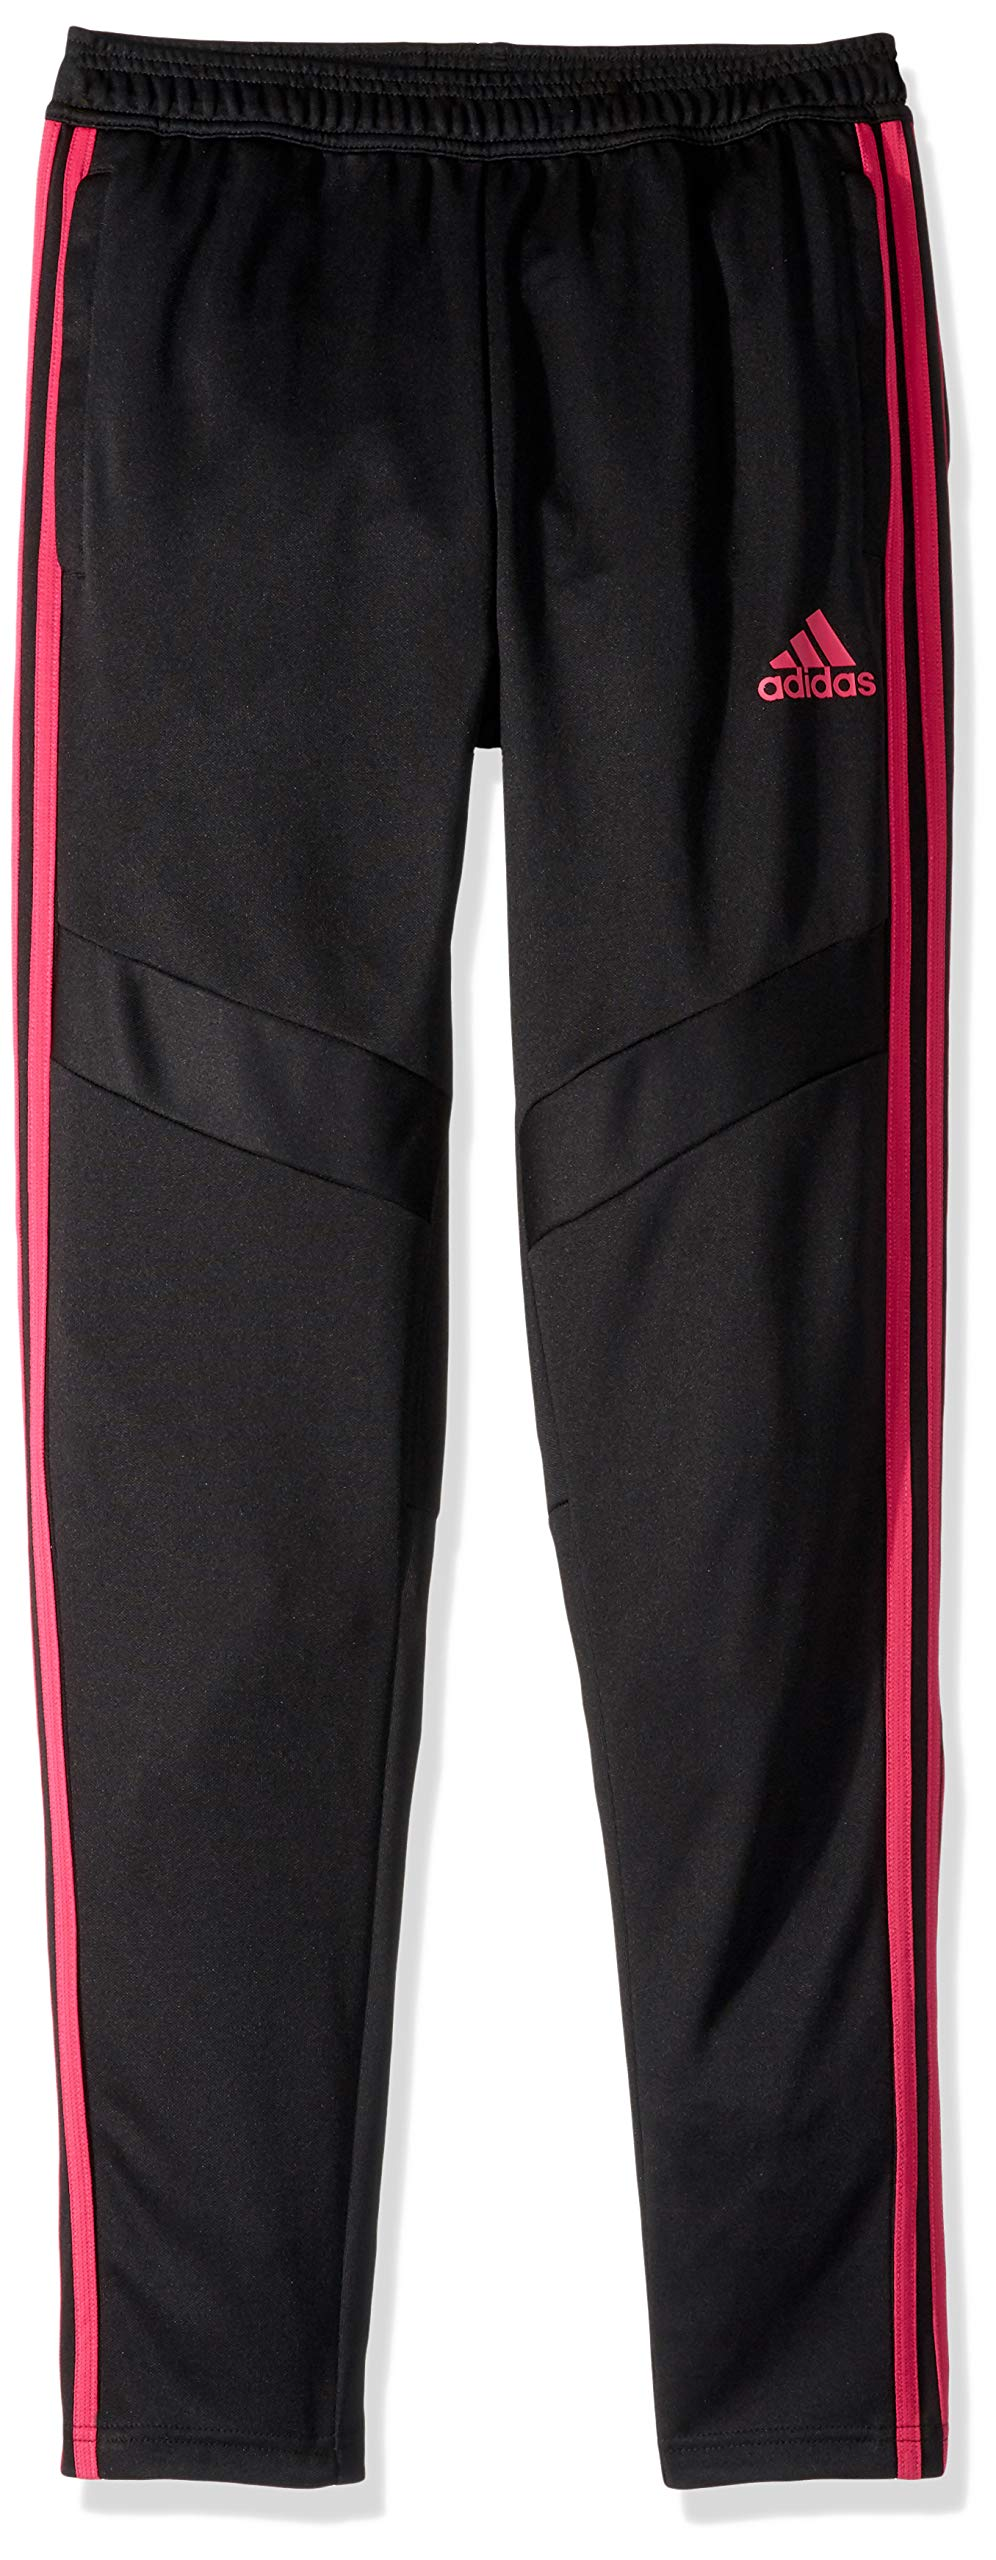 adidas Youth Tiro19 Youth Training Pants, Black/Real Magenta, XX-Small by adidas (Image #1)